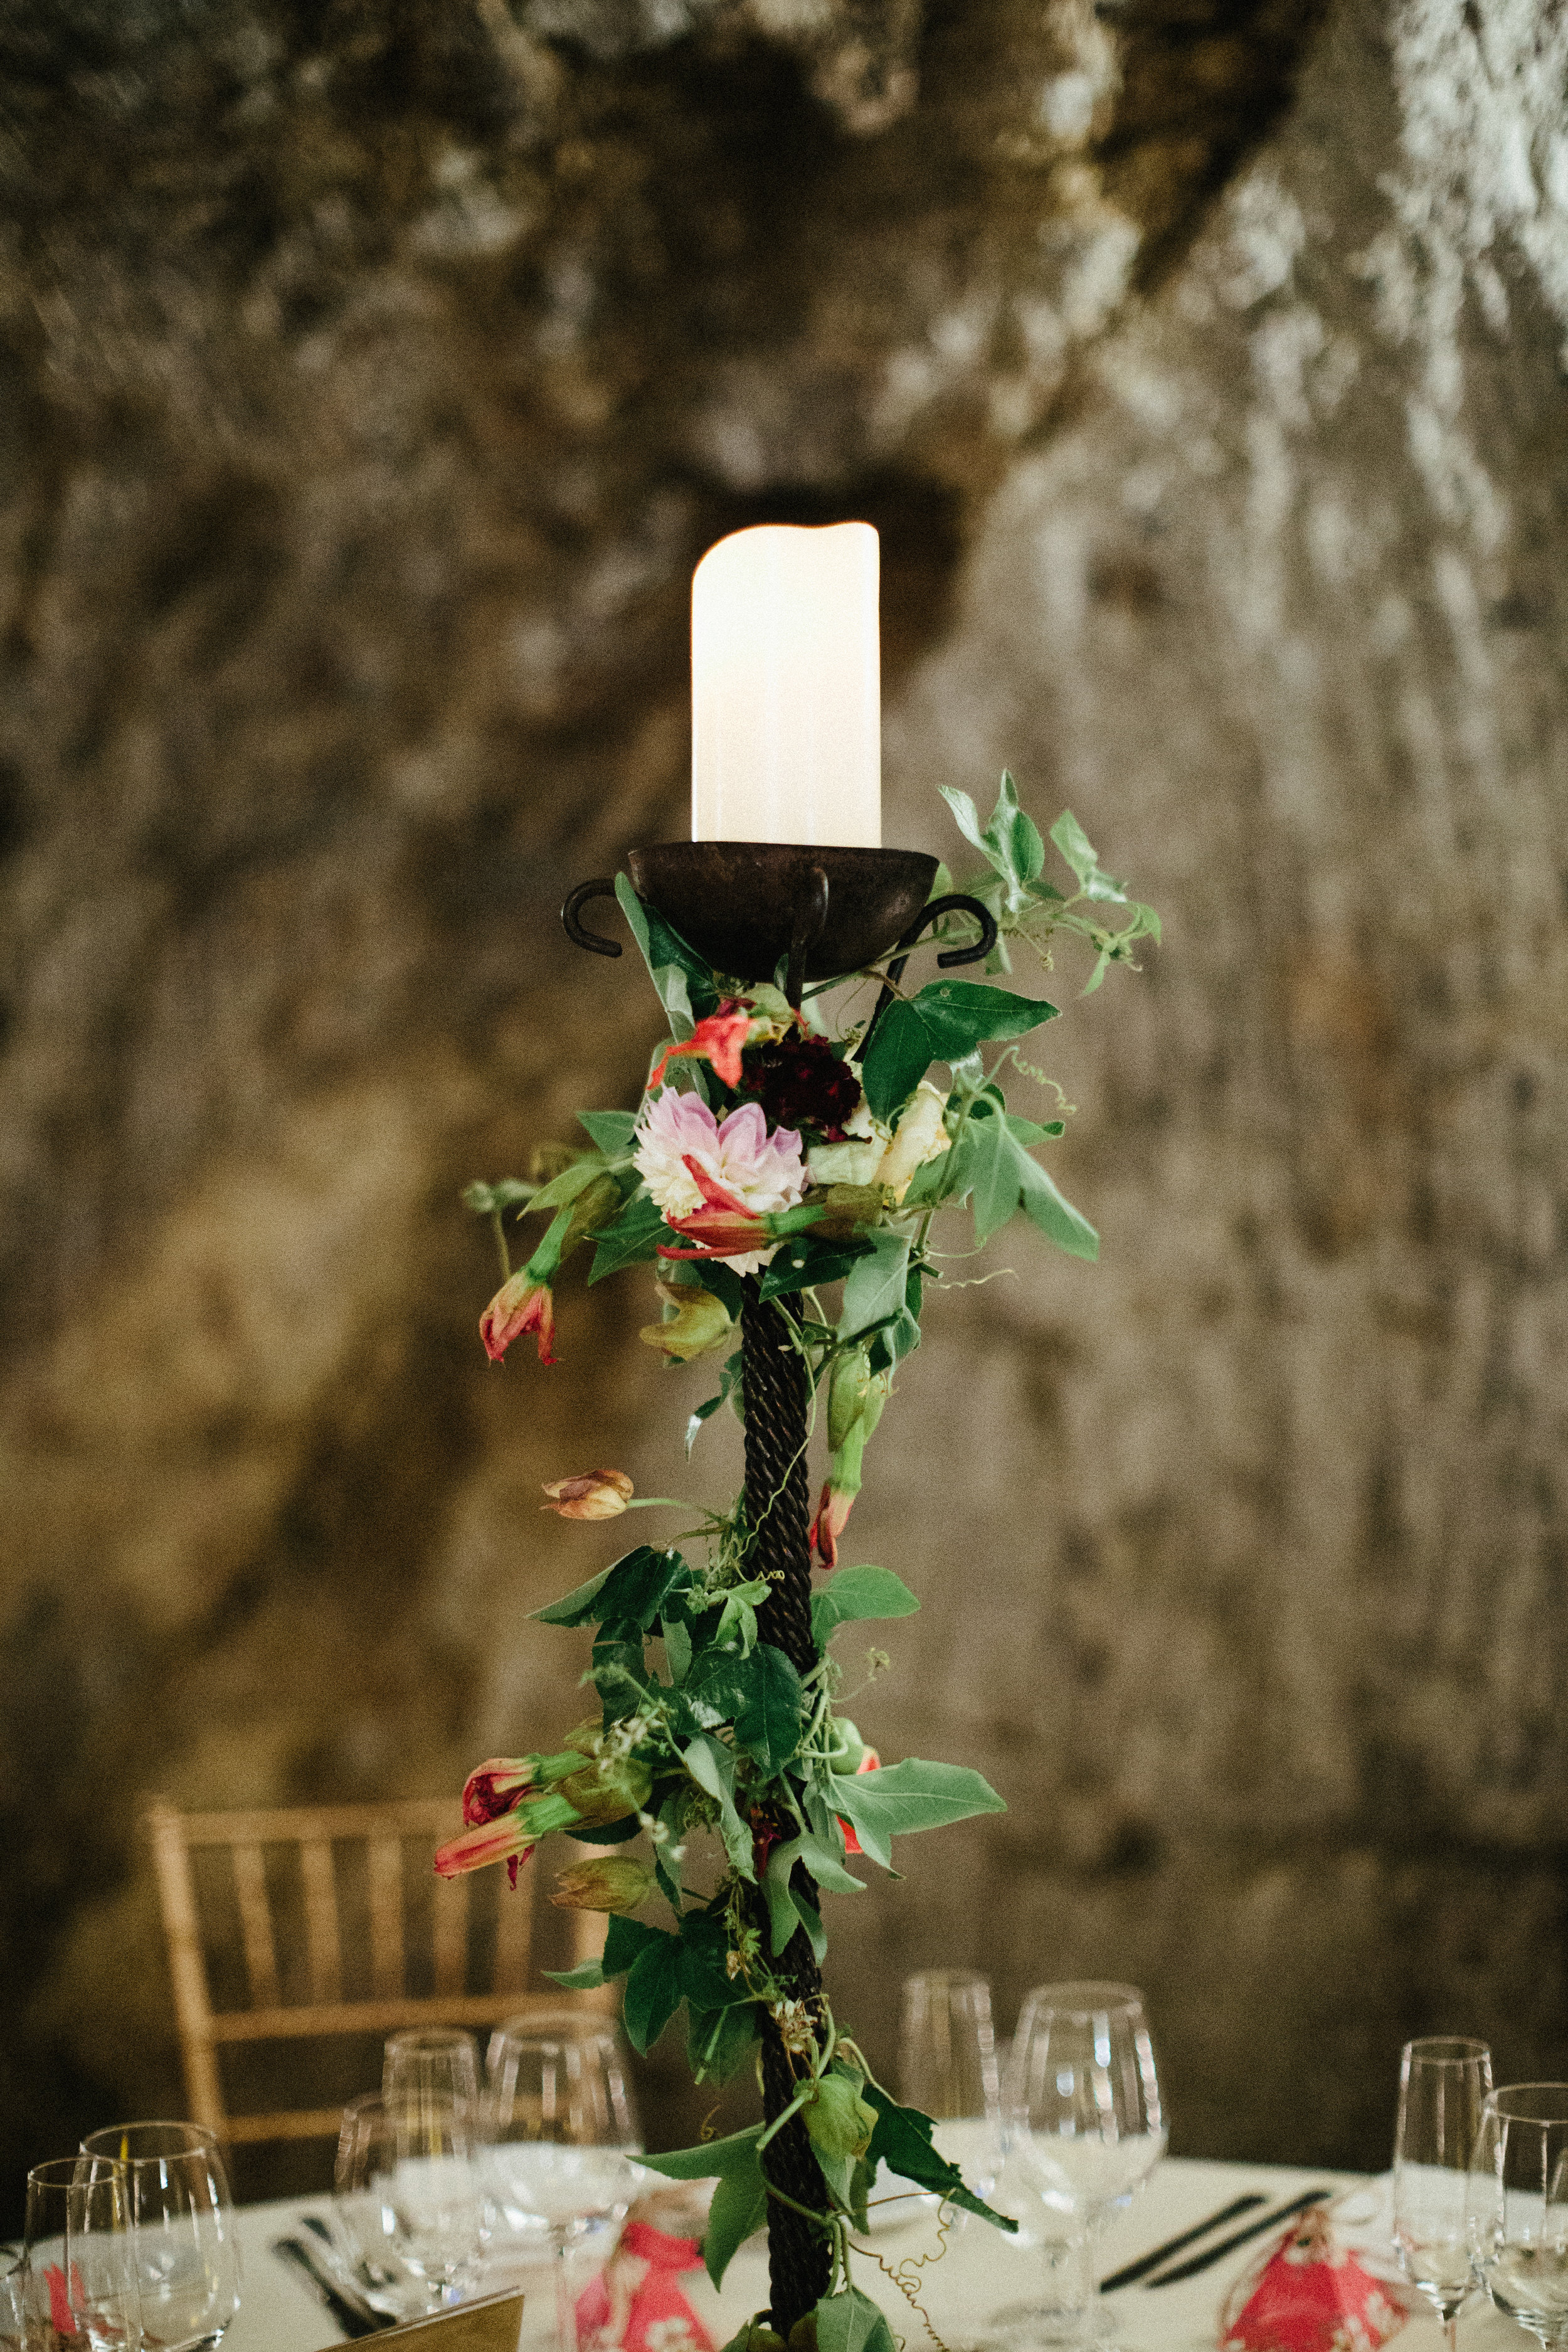 Hans Fahden wine cave reception, candelabra decorated with greenery and vivid passion flowers and roses.